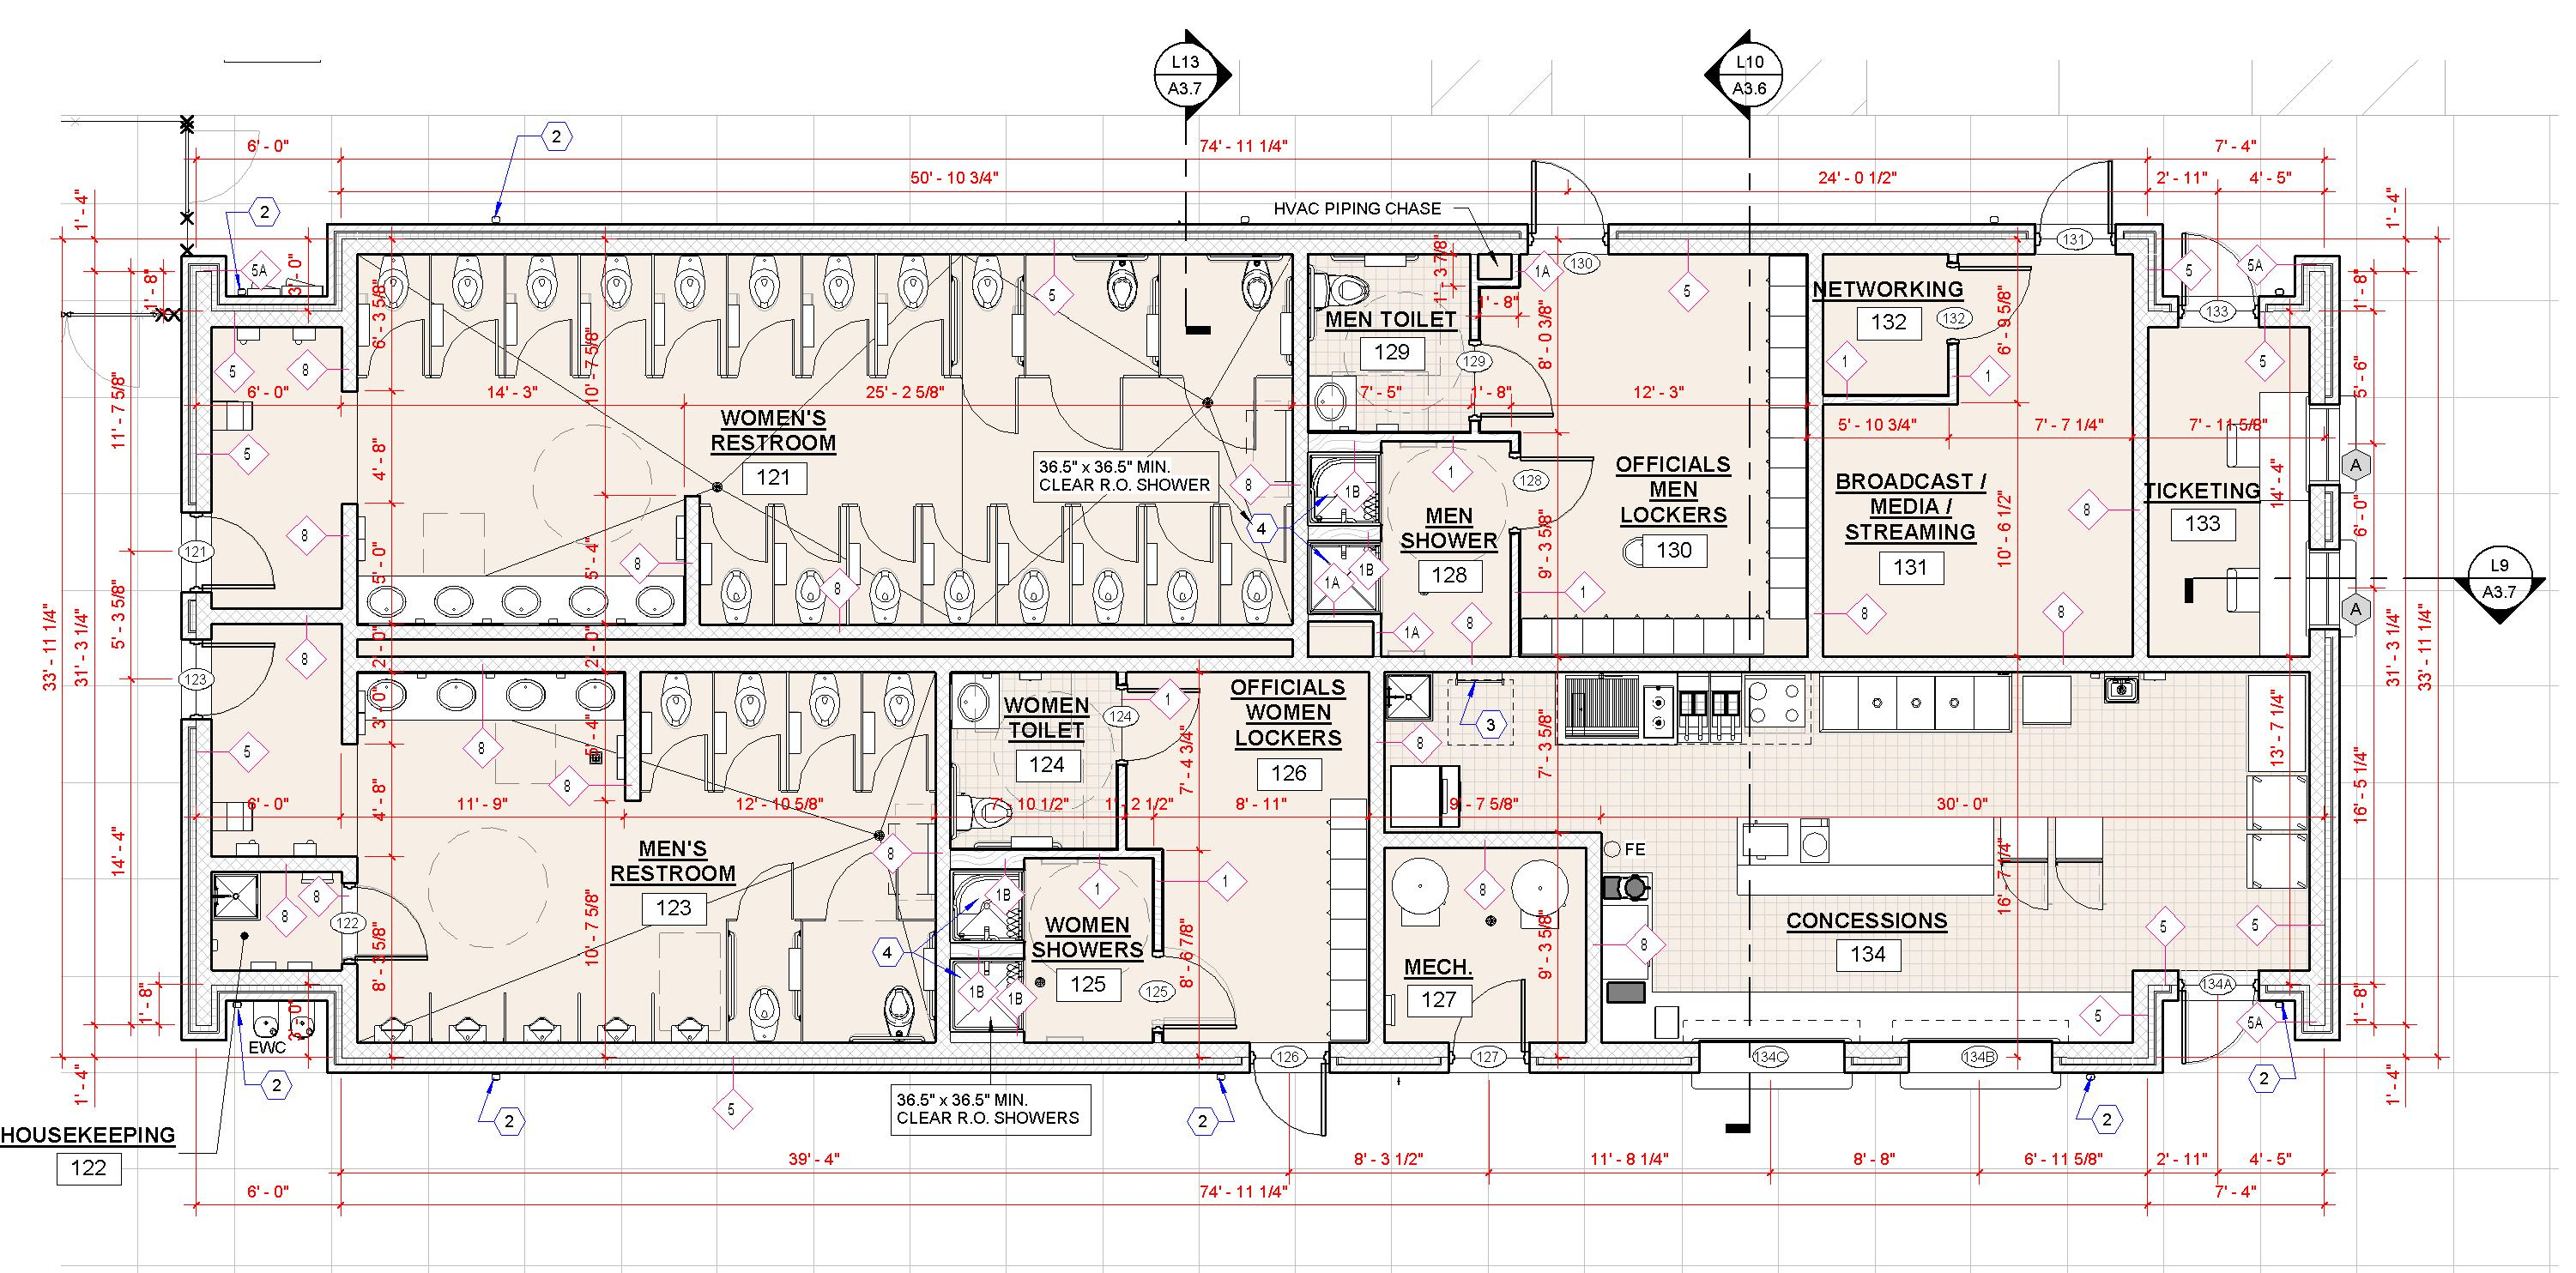 1506_ - Floor Plan - Level 1 - EP - Concessions.jpg